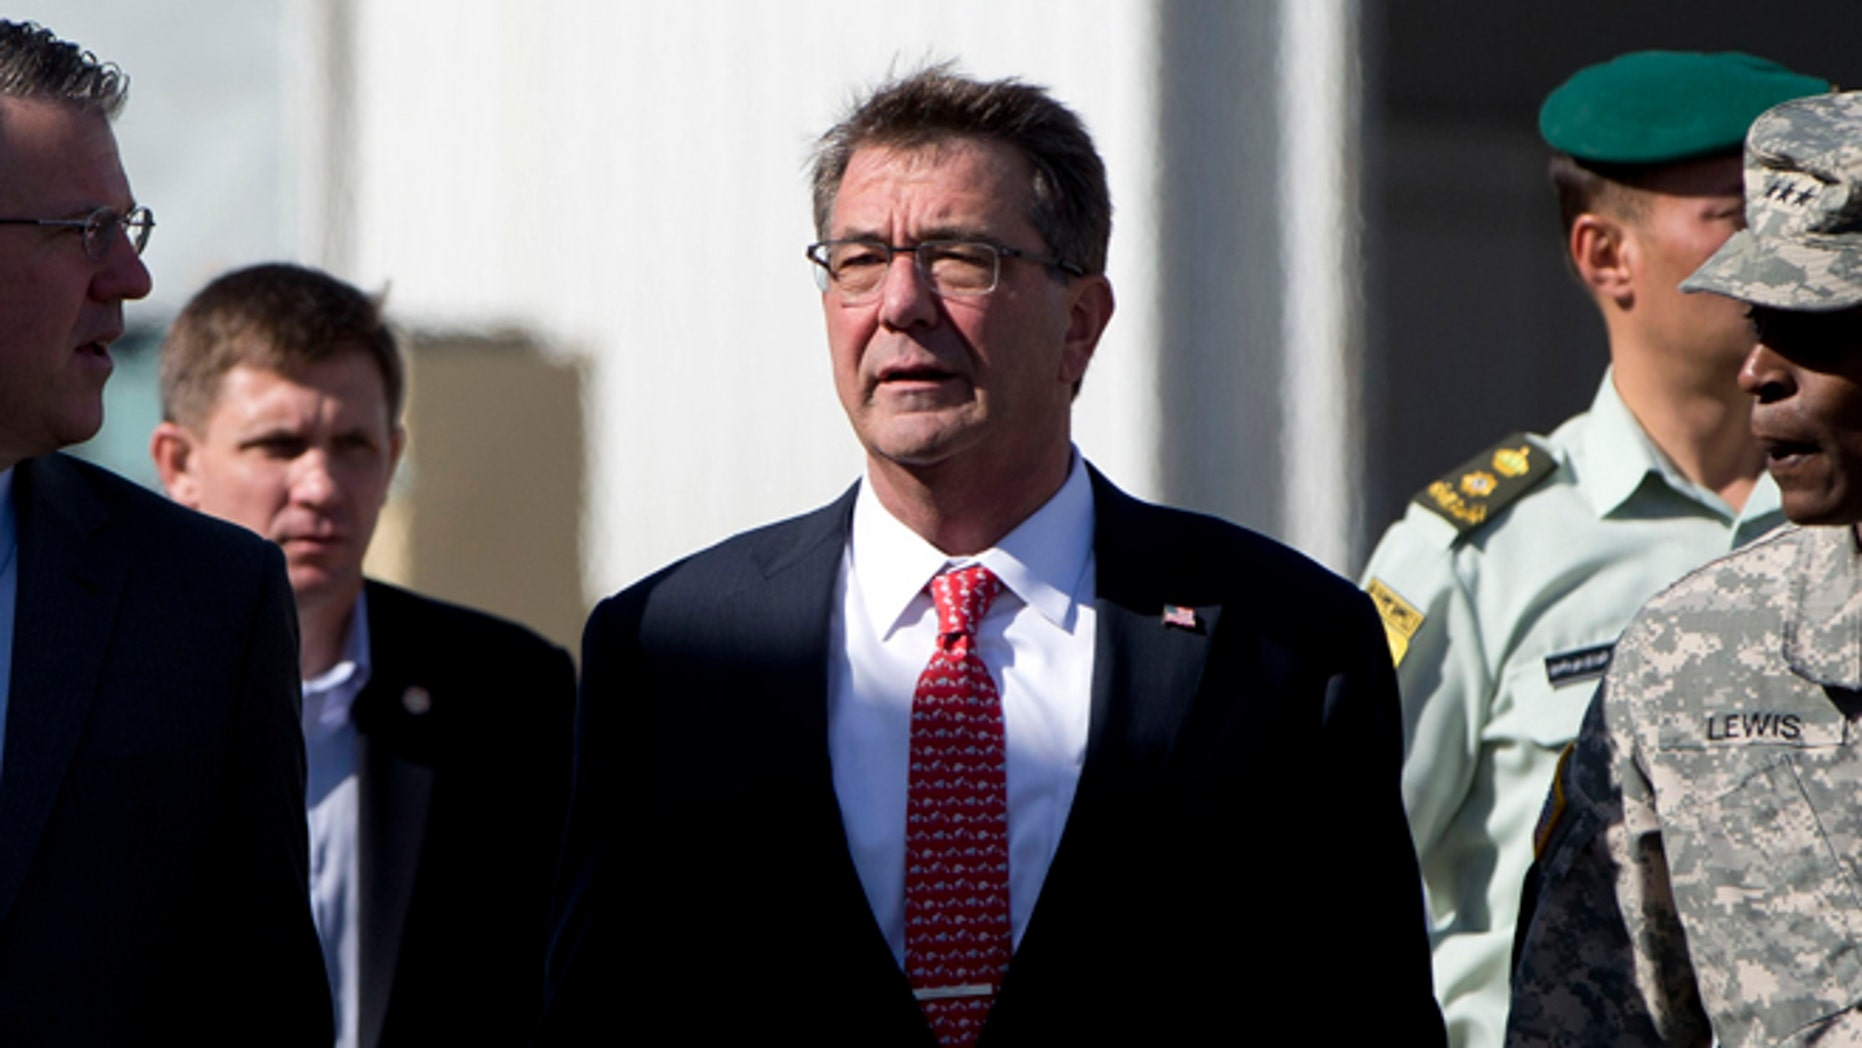 July 23, 2015: U.S. Defense Secretary Ash Carter, joined by U.S. Army Lt. Gen. Ron Lewis, right, and Chief of Staff Eric Rosenbach, left, walks the tarmac before boarding his plane at Queen Alia Airport in Amman, Jordan, en route to Baghdad, Iraq.